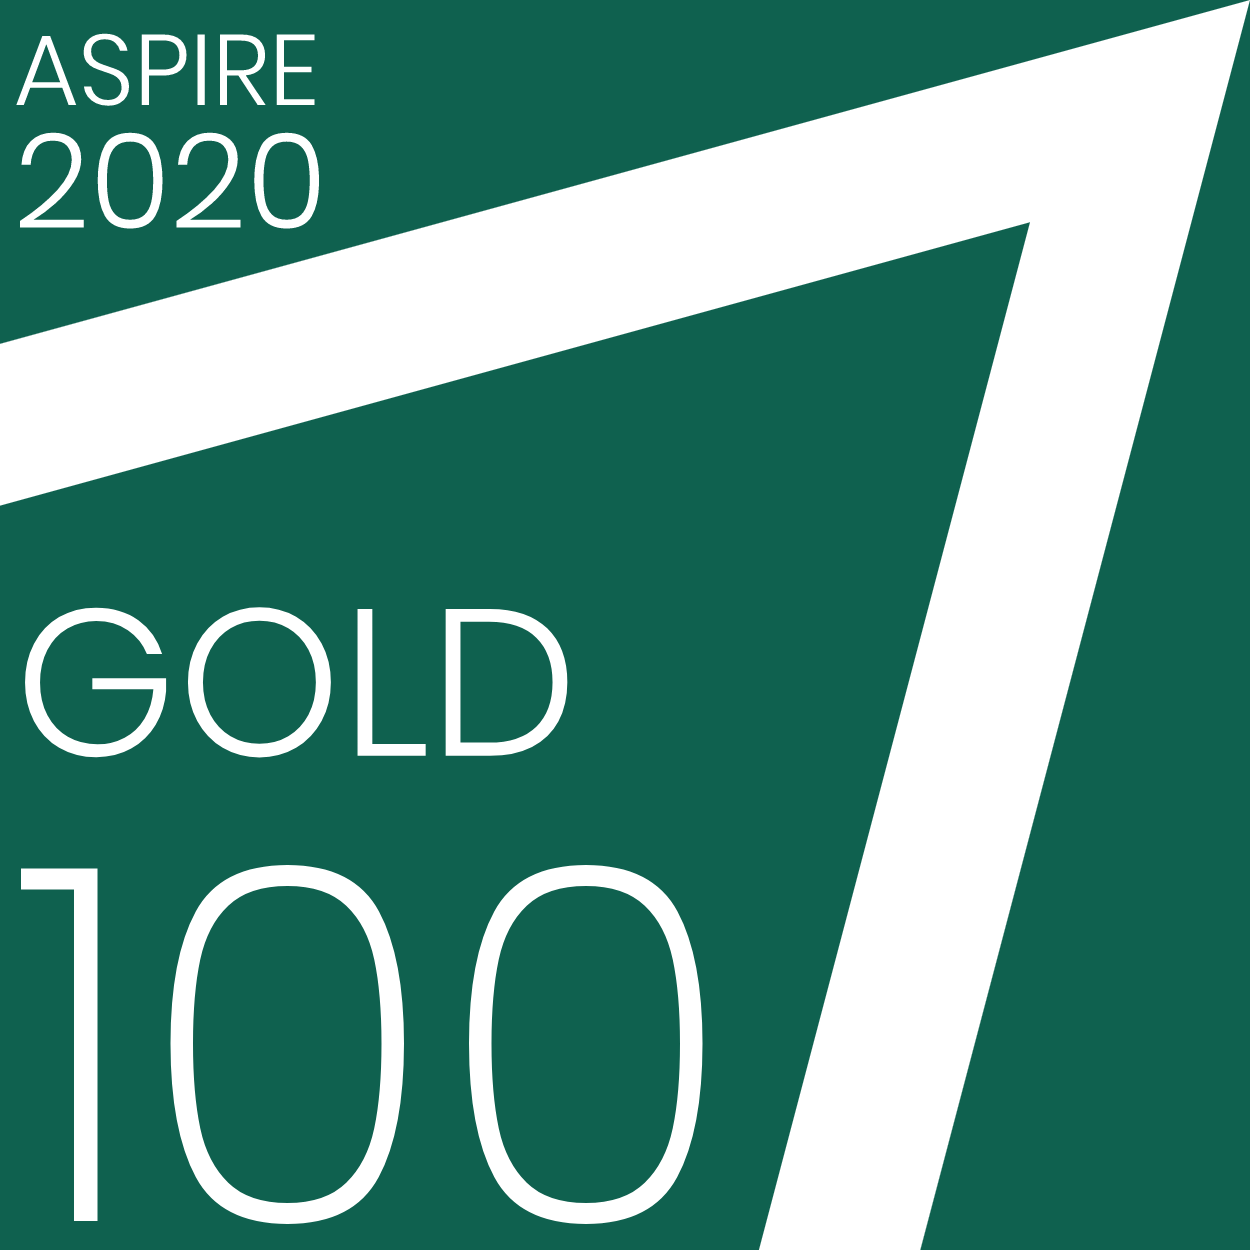 A badge from ASPIREreview indicating that the ProQuest Platform accessibility statement received a perfect score of 100.